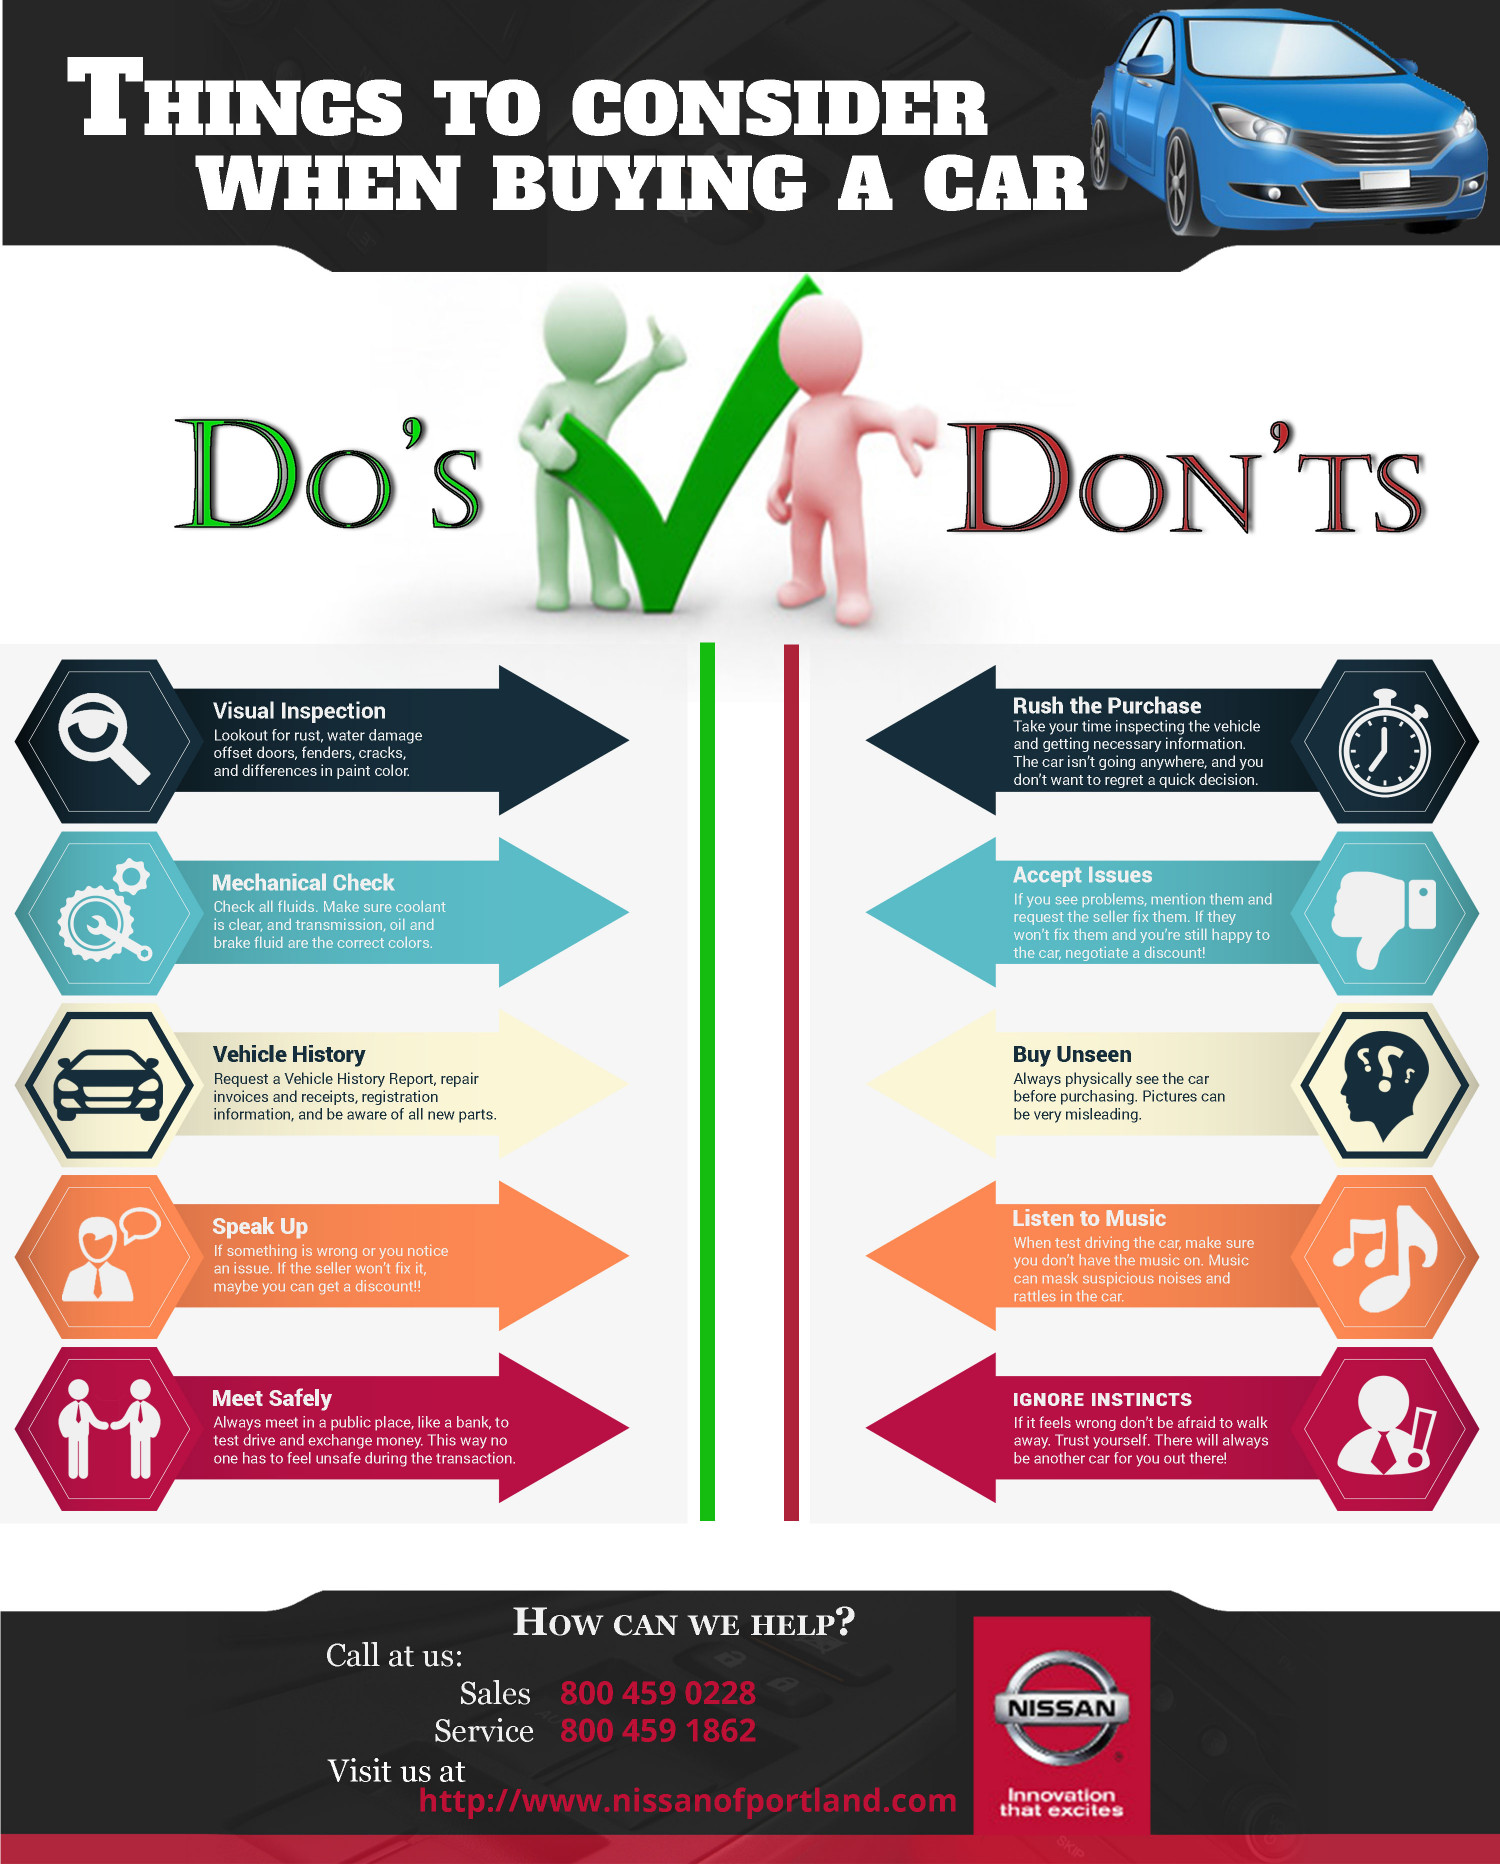 Things To Consider When Buying A Car.